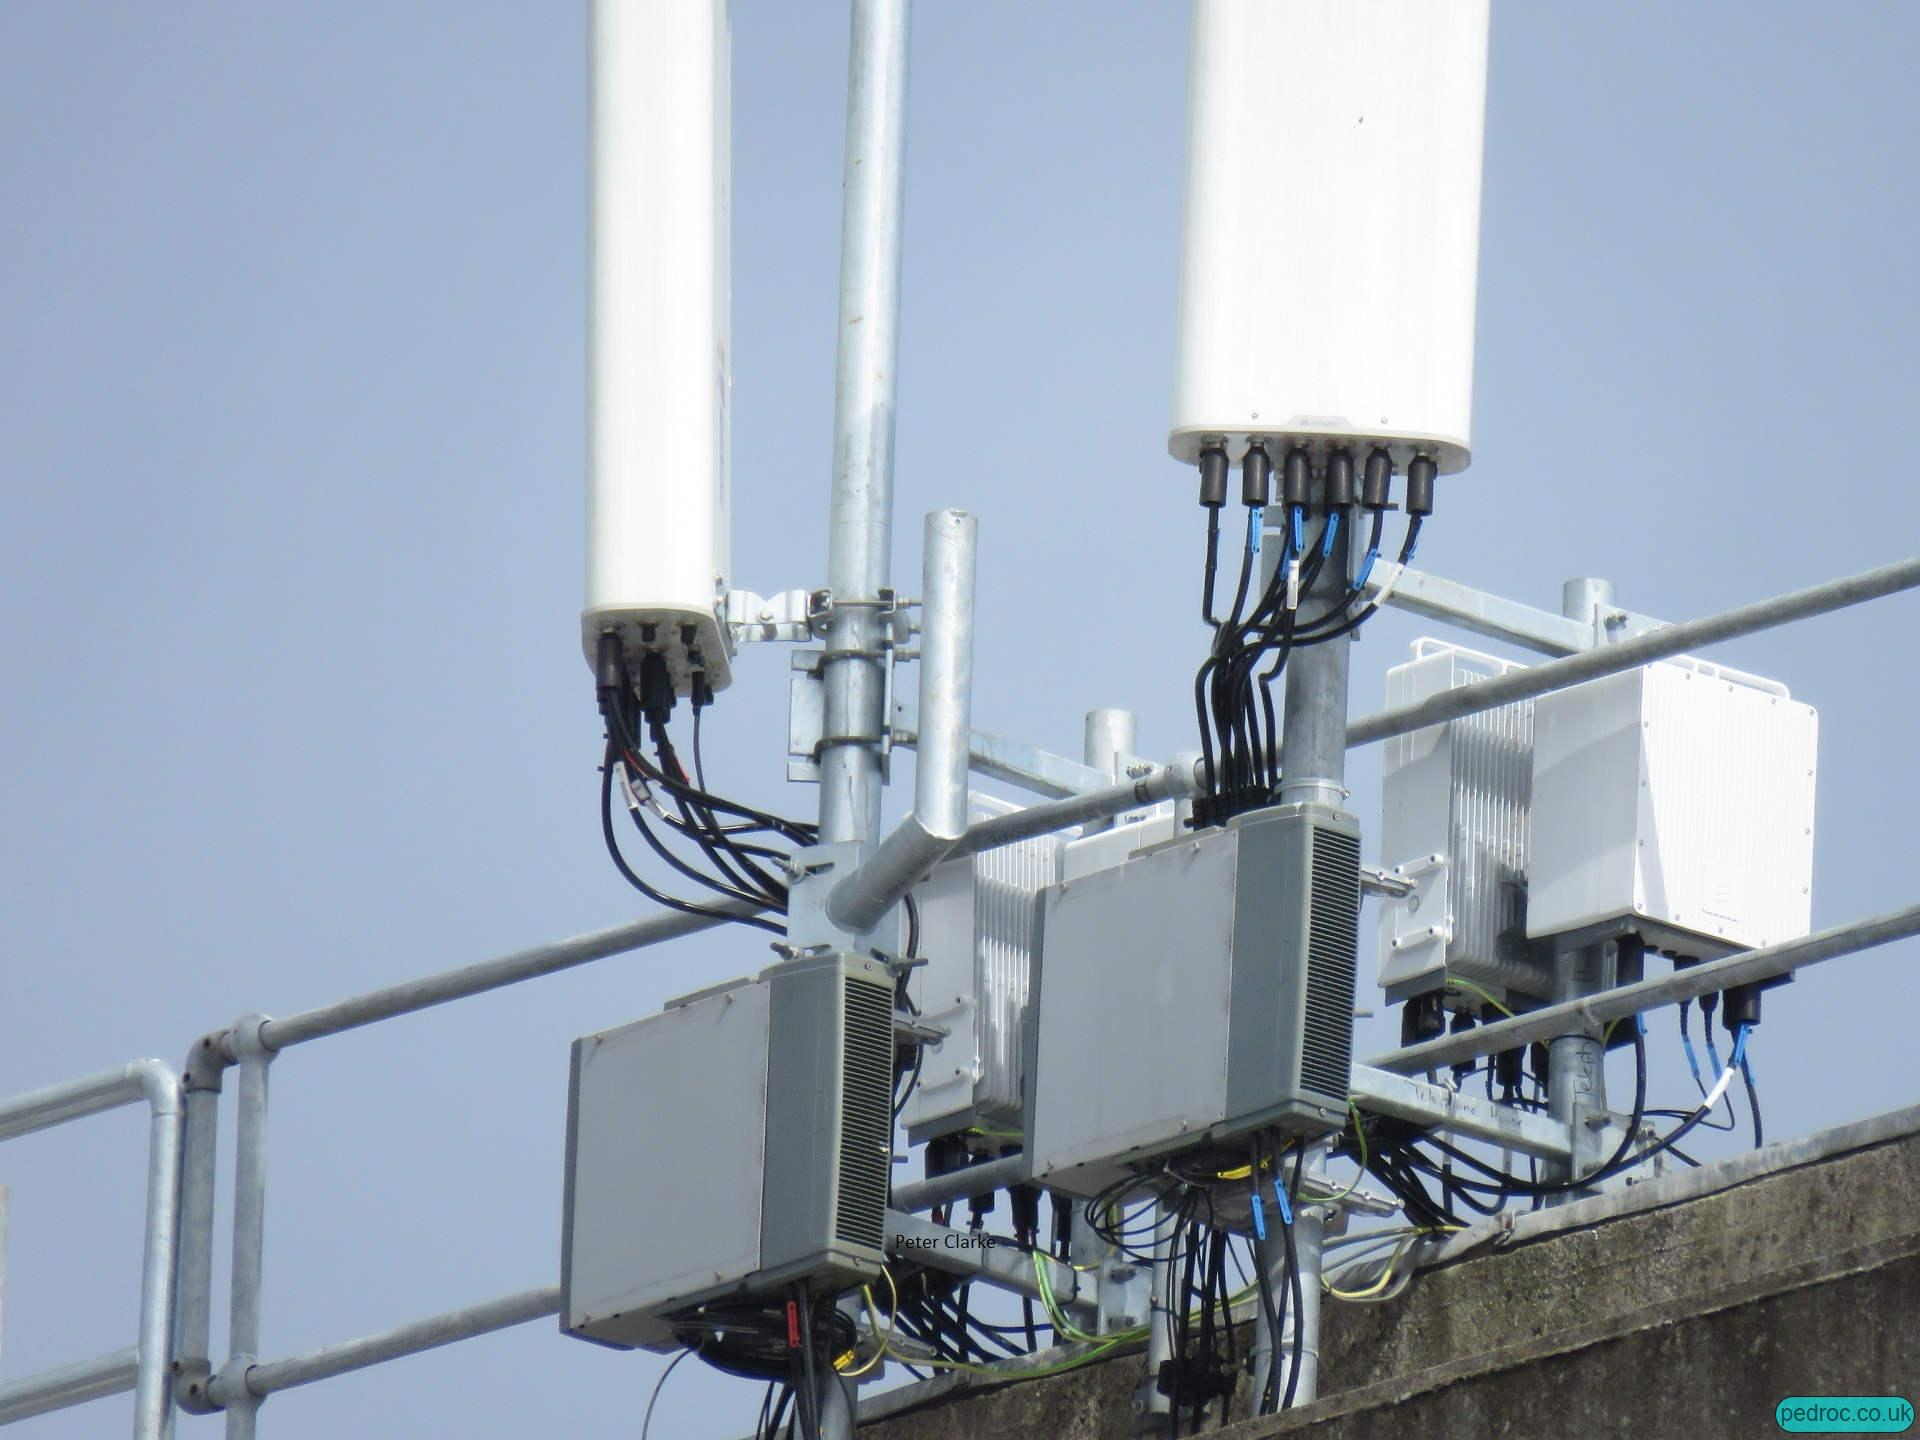 A closeup of the flagship Three Ericsson site in Dublin: Ericsson 2238 triple band radios capable for B8 (900MHz), B20 (800MHz) and Band 28 (700MHz); Ericsson 4443 radios for B3 (1800MHz) and B1 (2100MHz) and Nokia FXDBs for 900MHz.